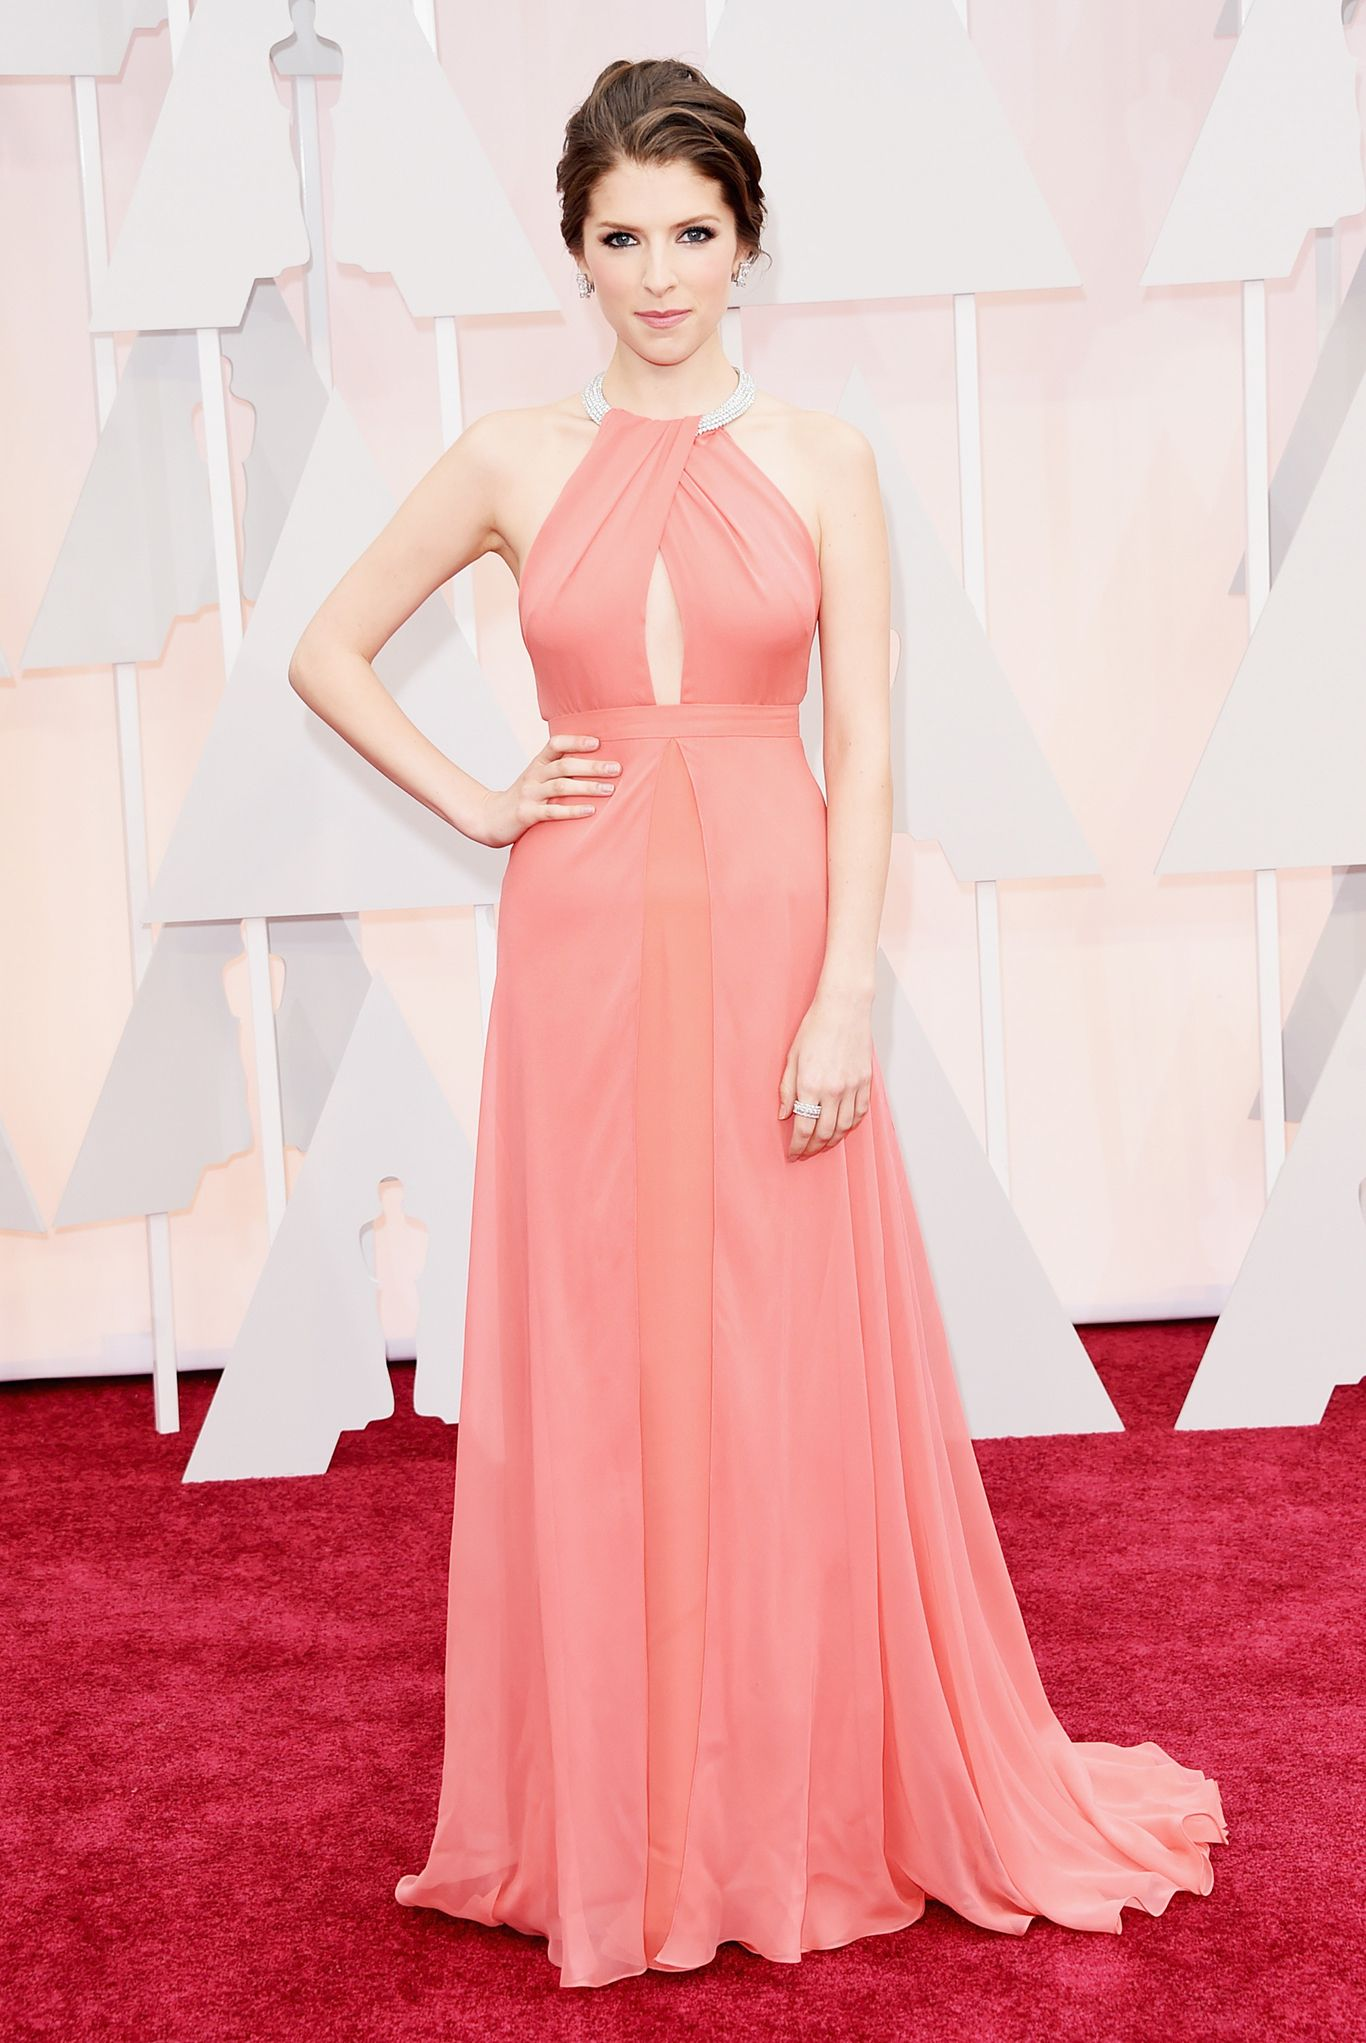 The 2015 Academy Awards: All the Pictures From the Red Carpet, Look ...